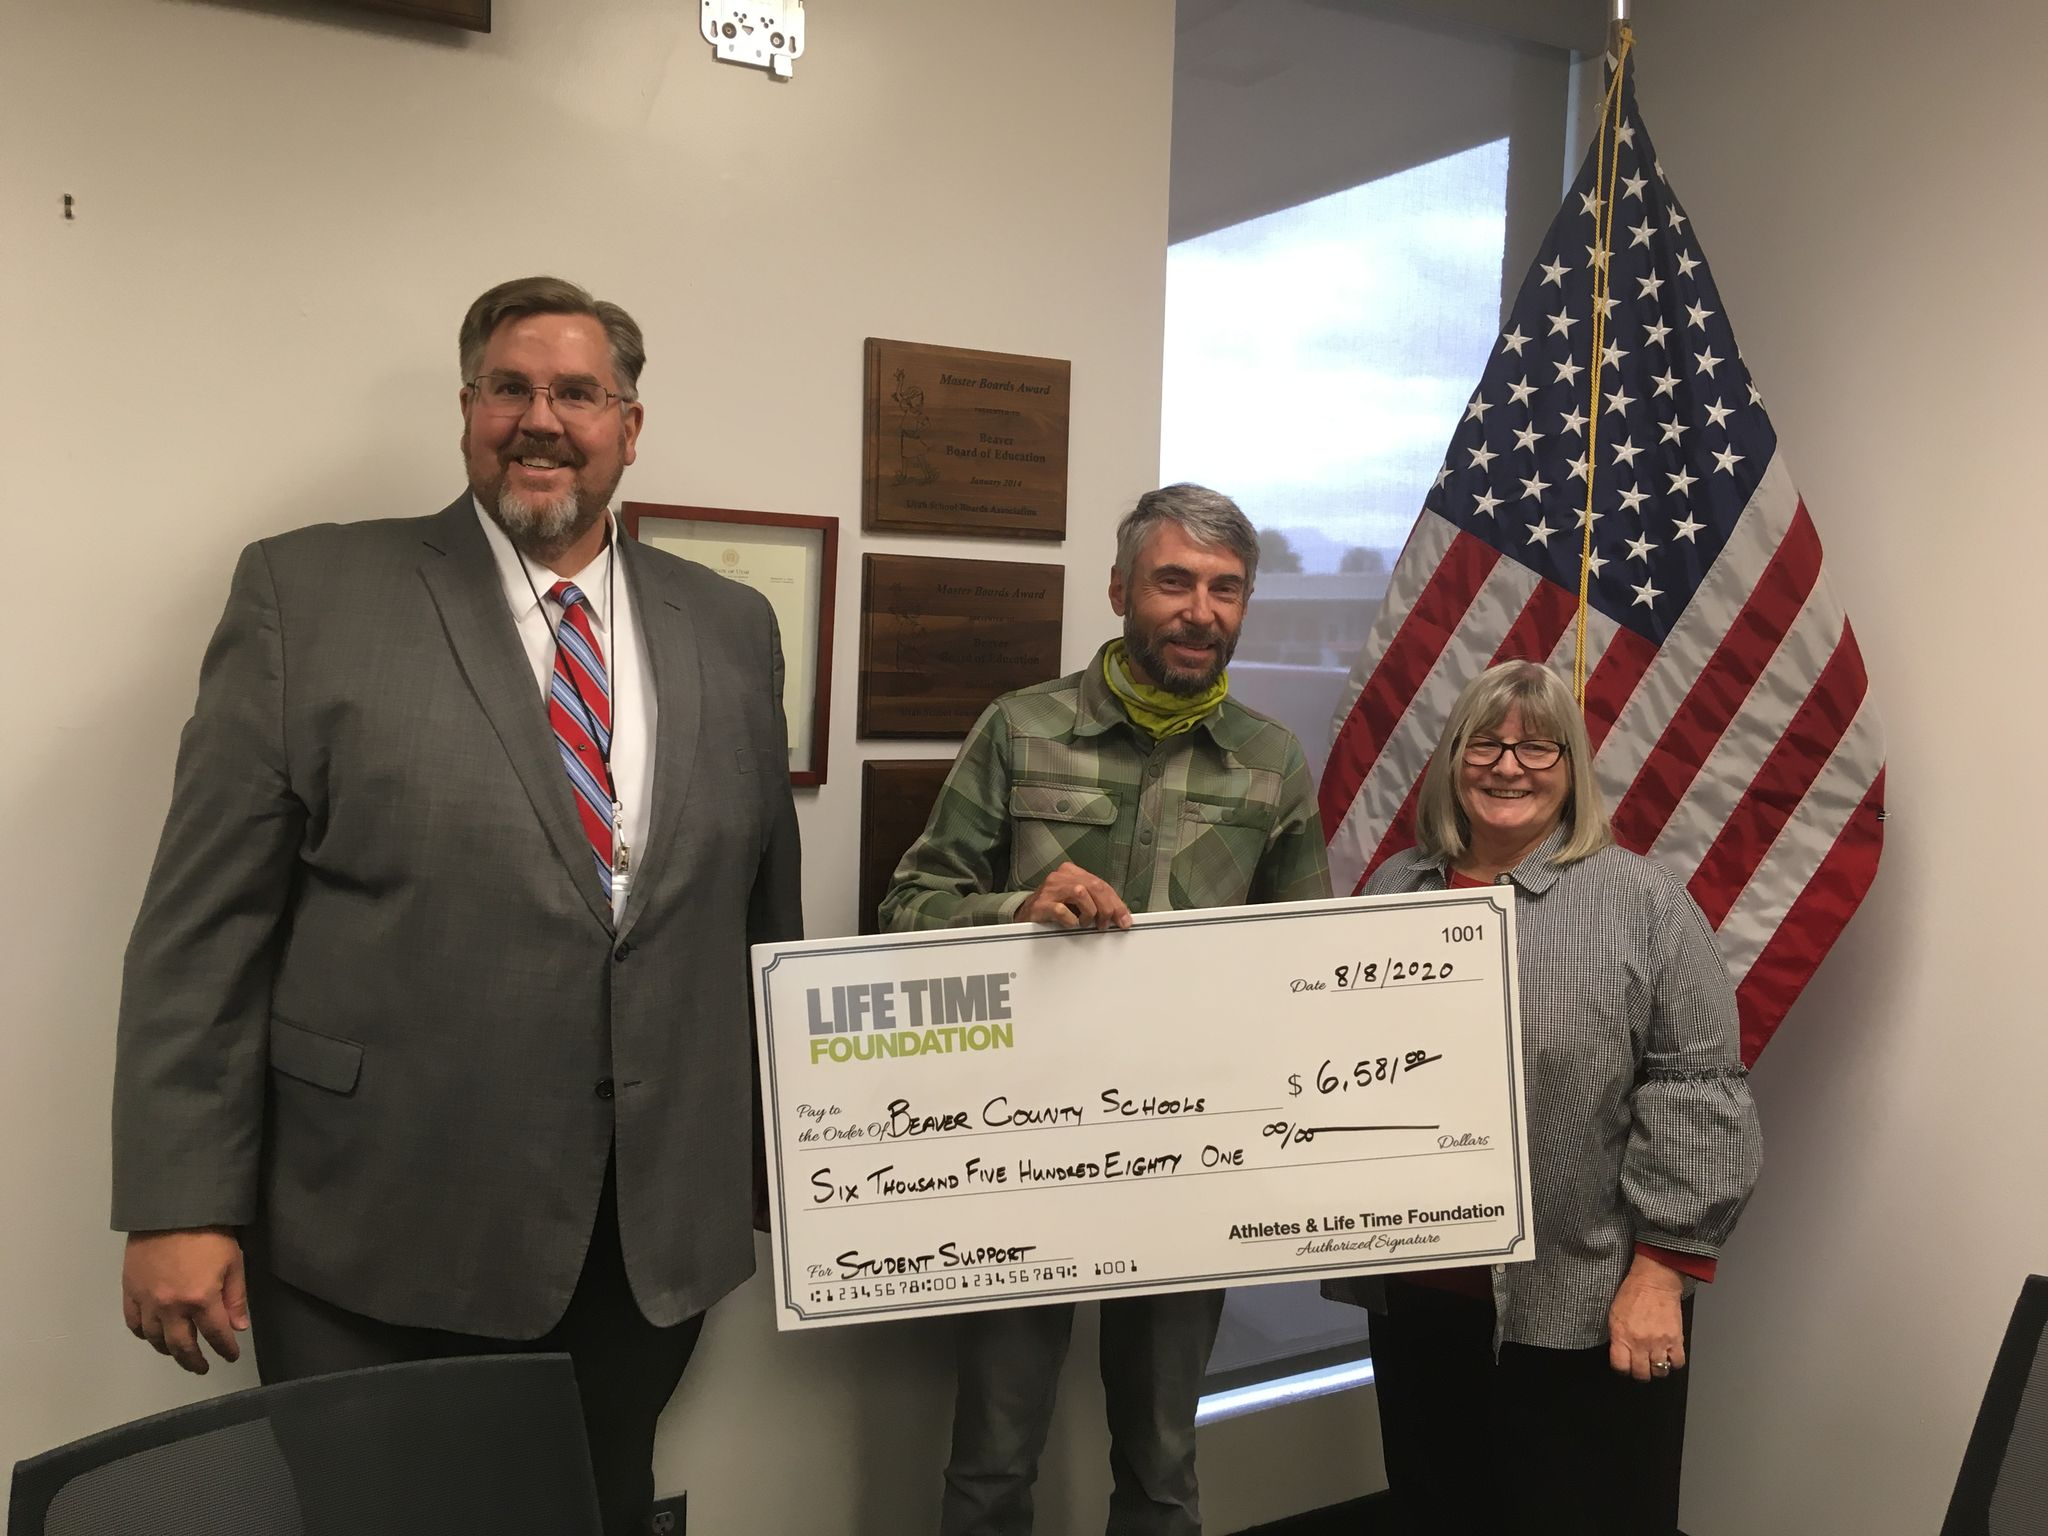 Burke Swindlehurst, event director of Life Time's Crusher in the Tushar, presents the Beaver County School District with a check for $6581.00. Photo courtesy Life Time Events